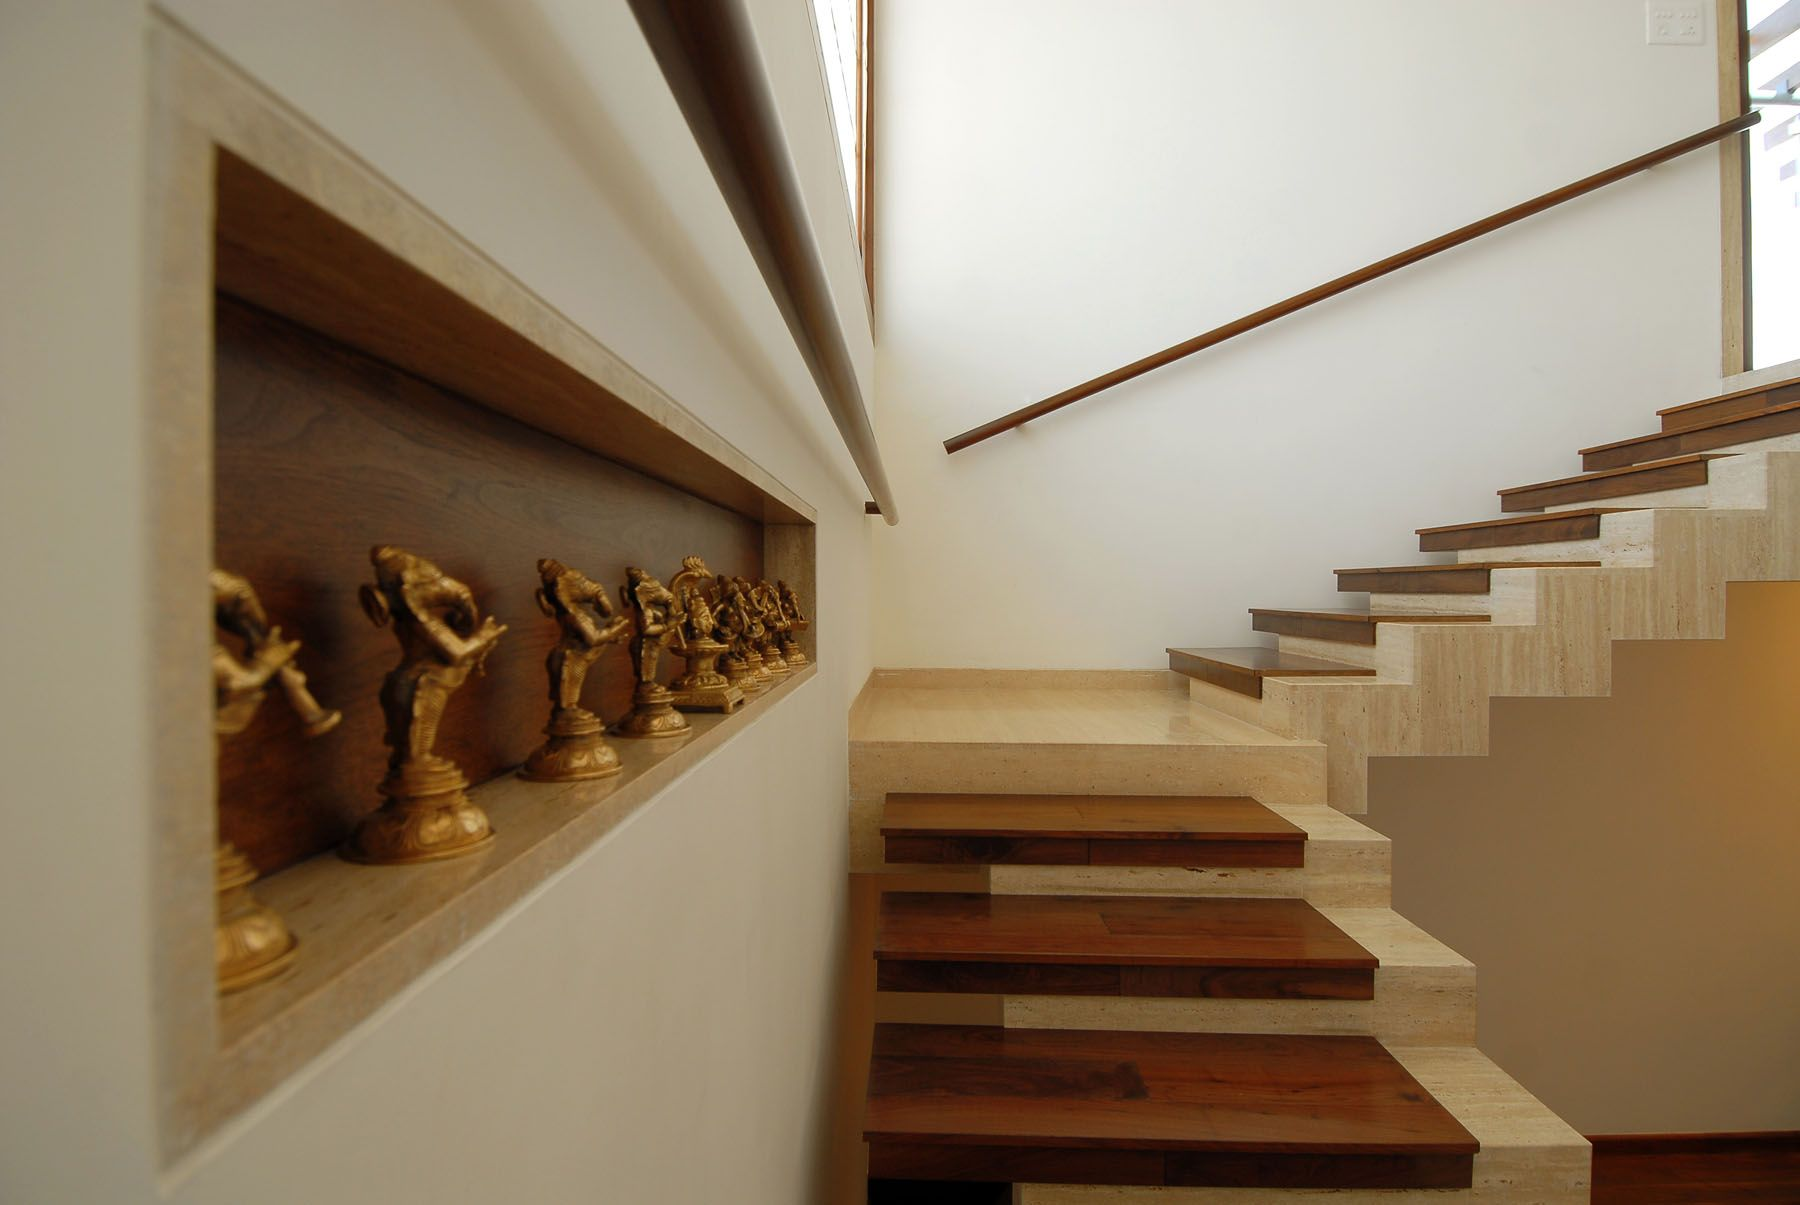 Duplex House Interior Design Stairs Pinned By